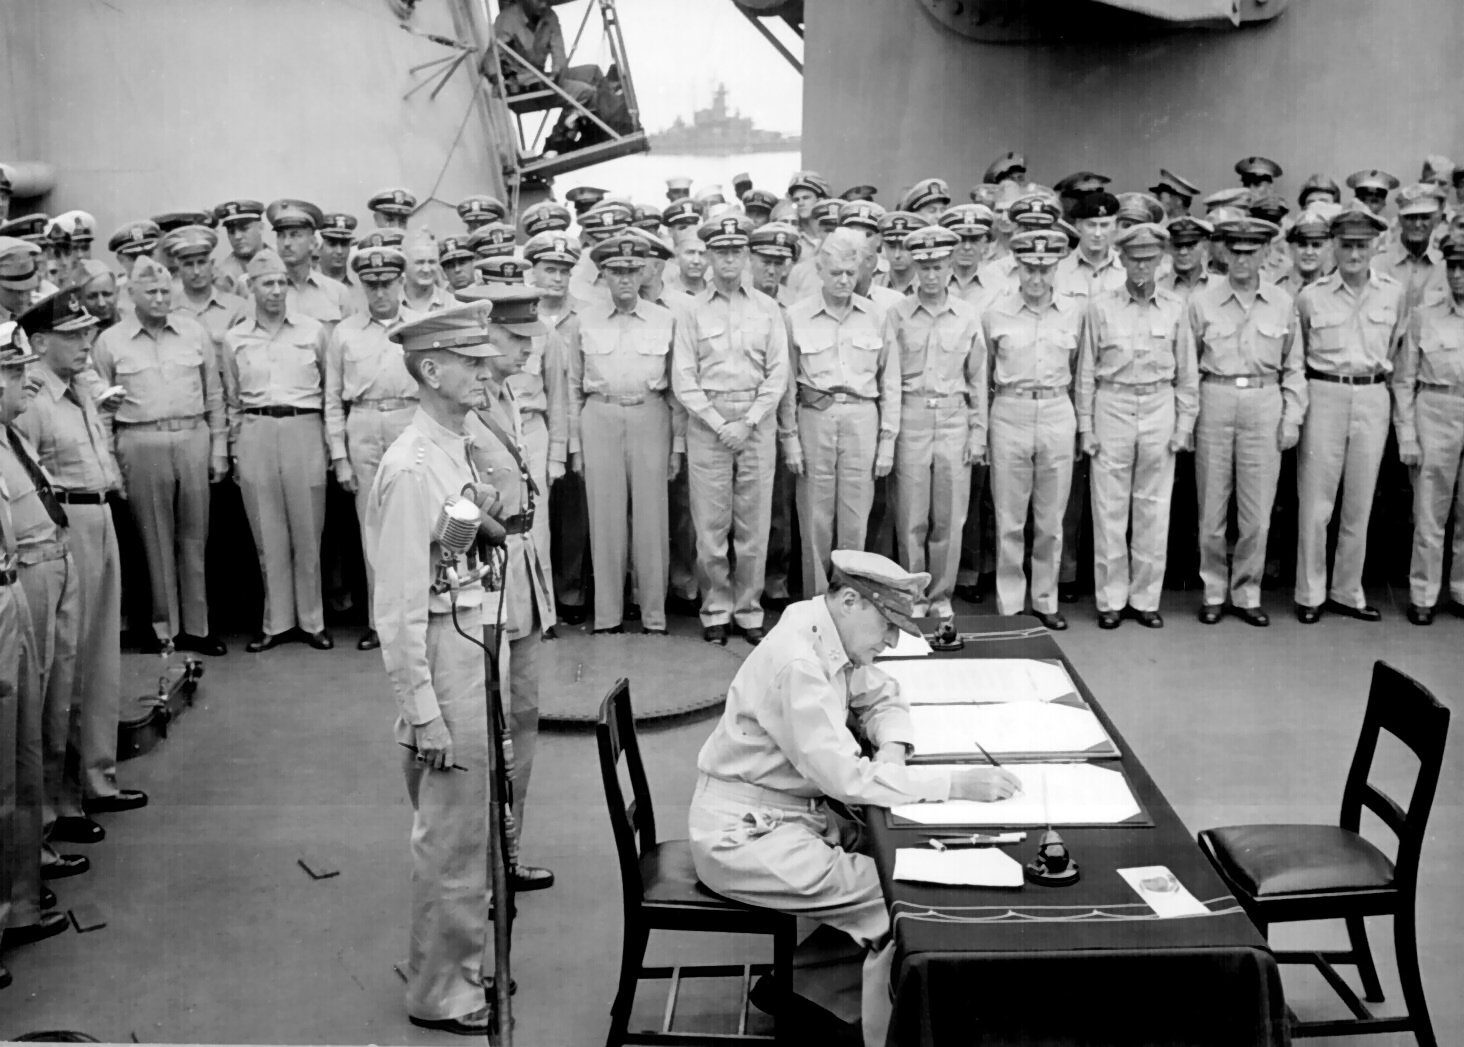 Douglas MacArthur signing the Japanese surrender documents aboard the USS Missouri on September 2nd, 1945. (photo via wikipedia)